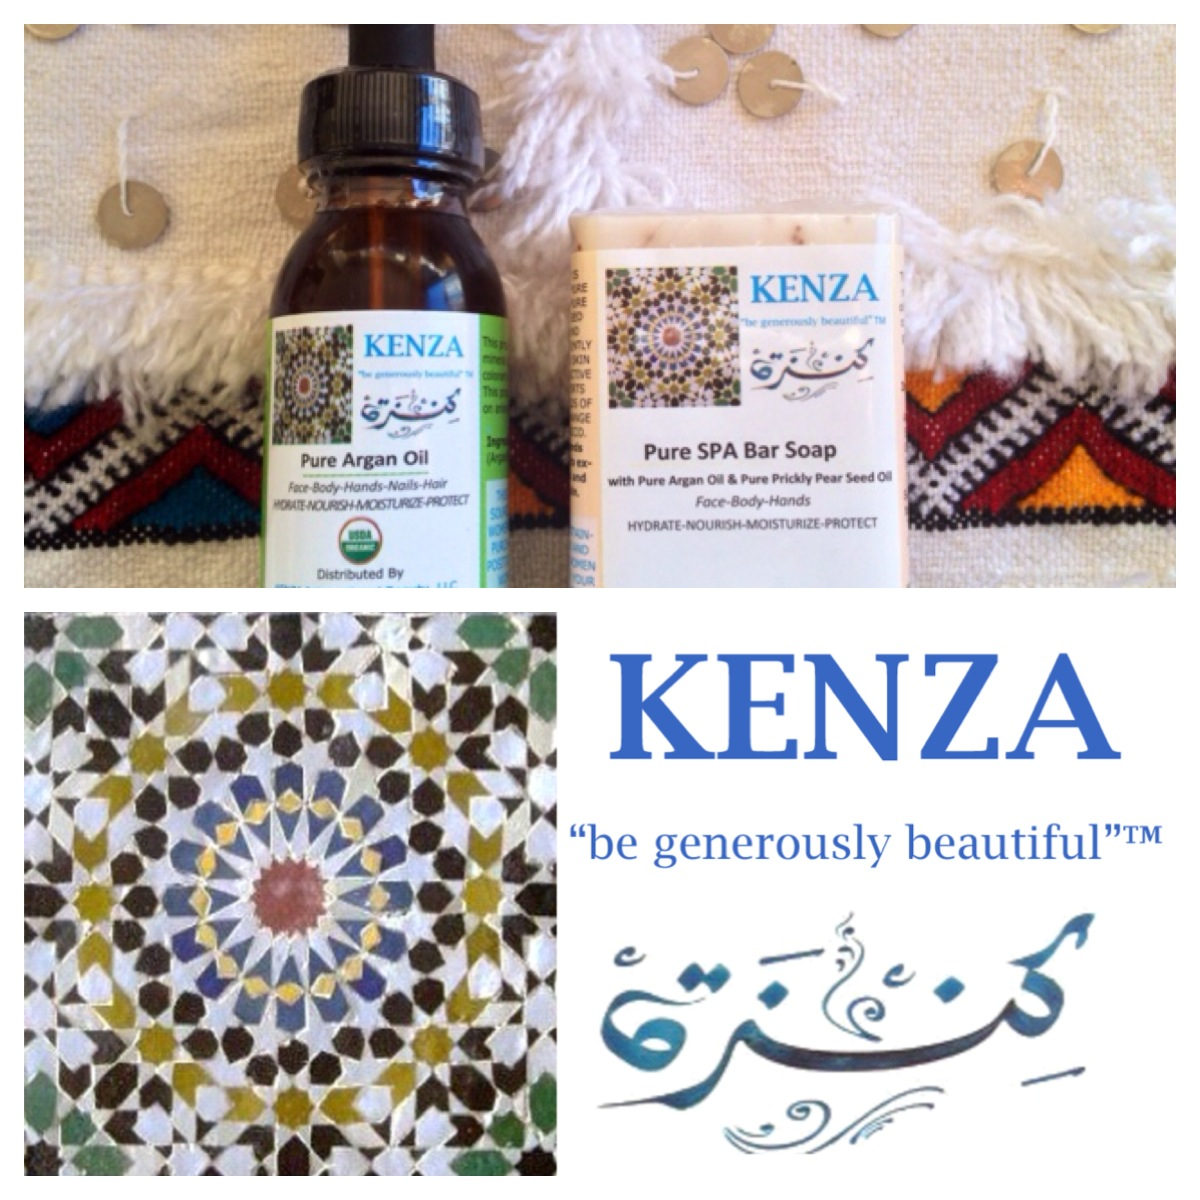 KENZA International Beauty